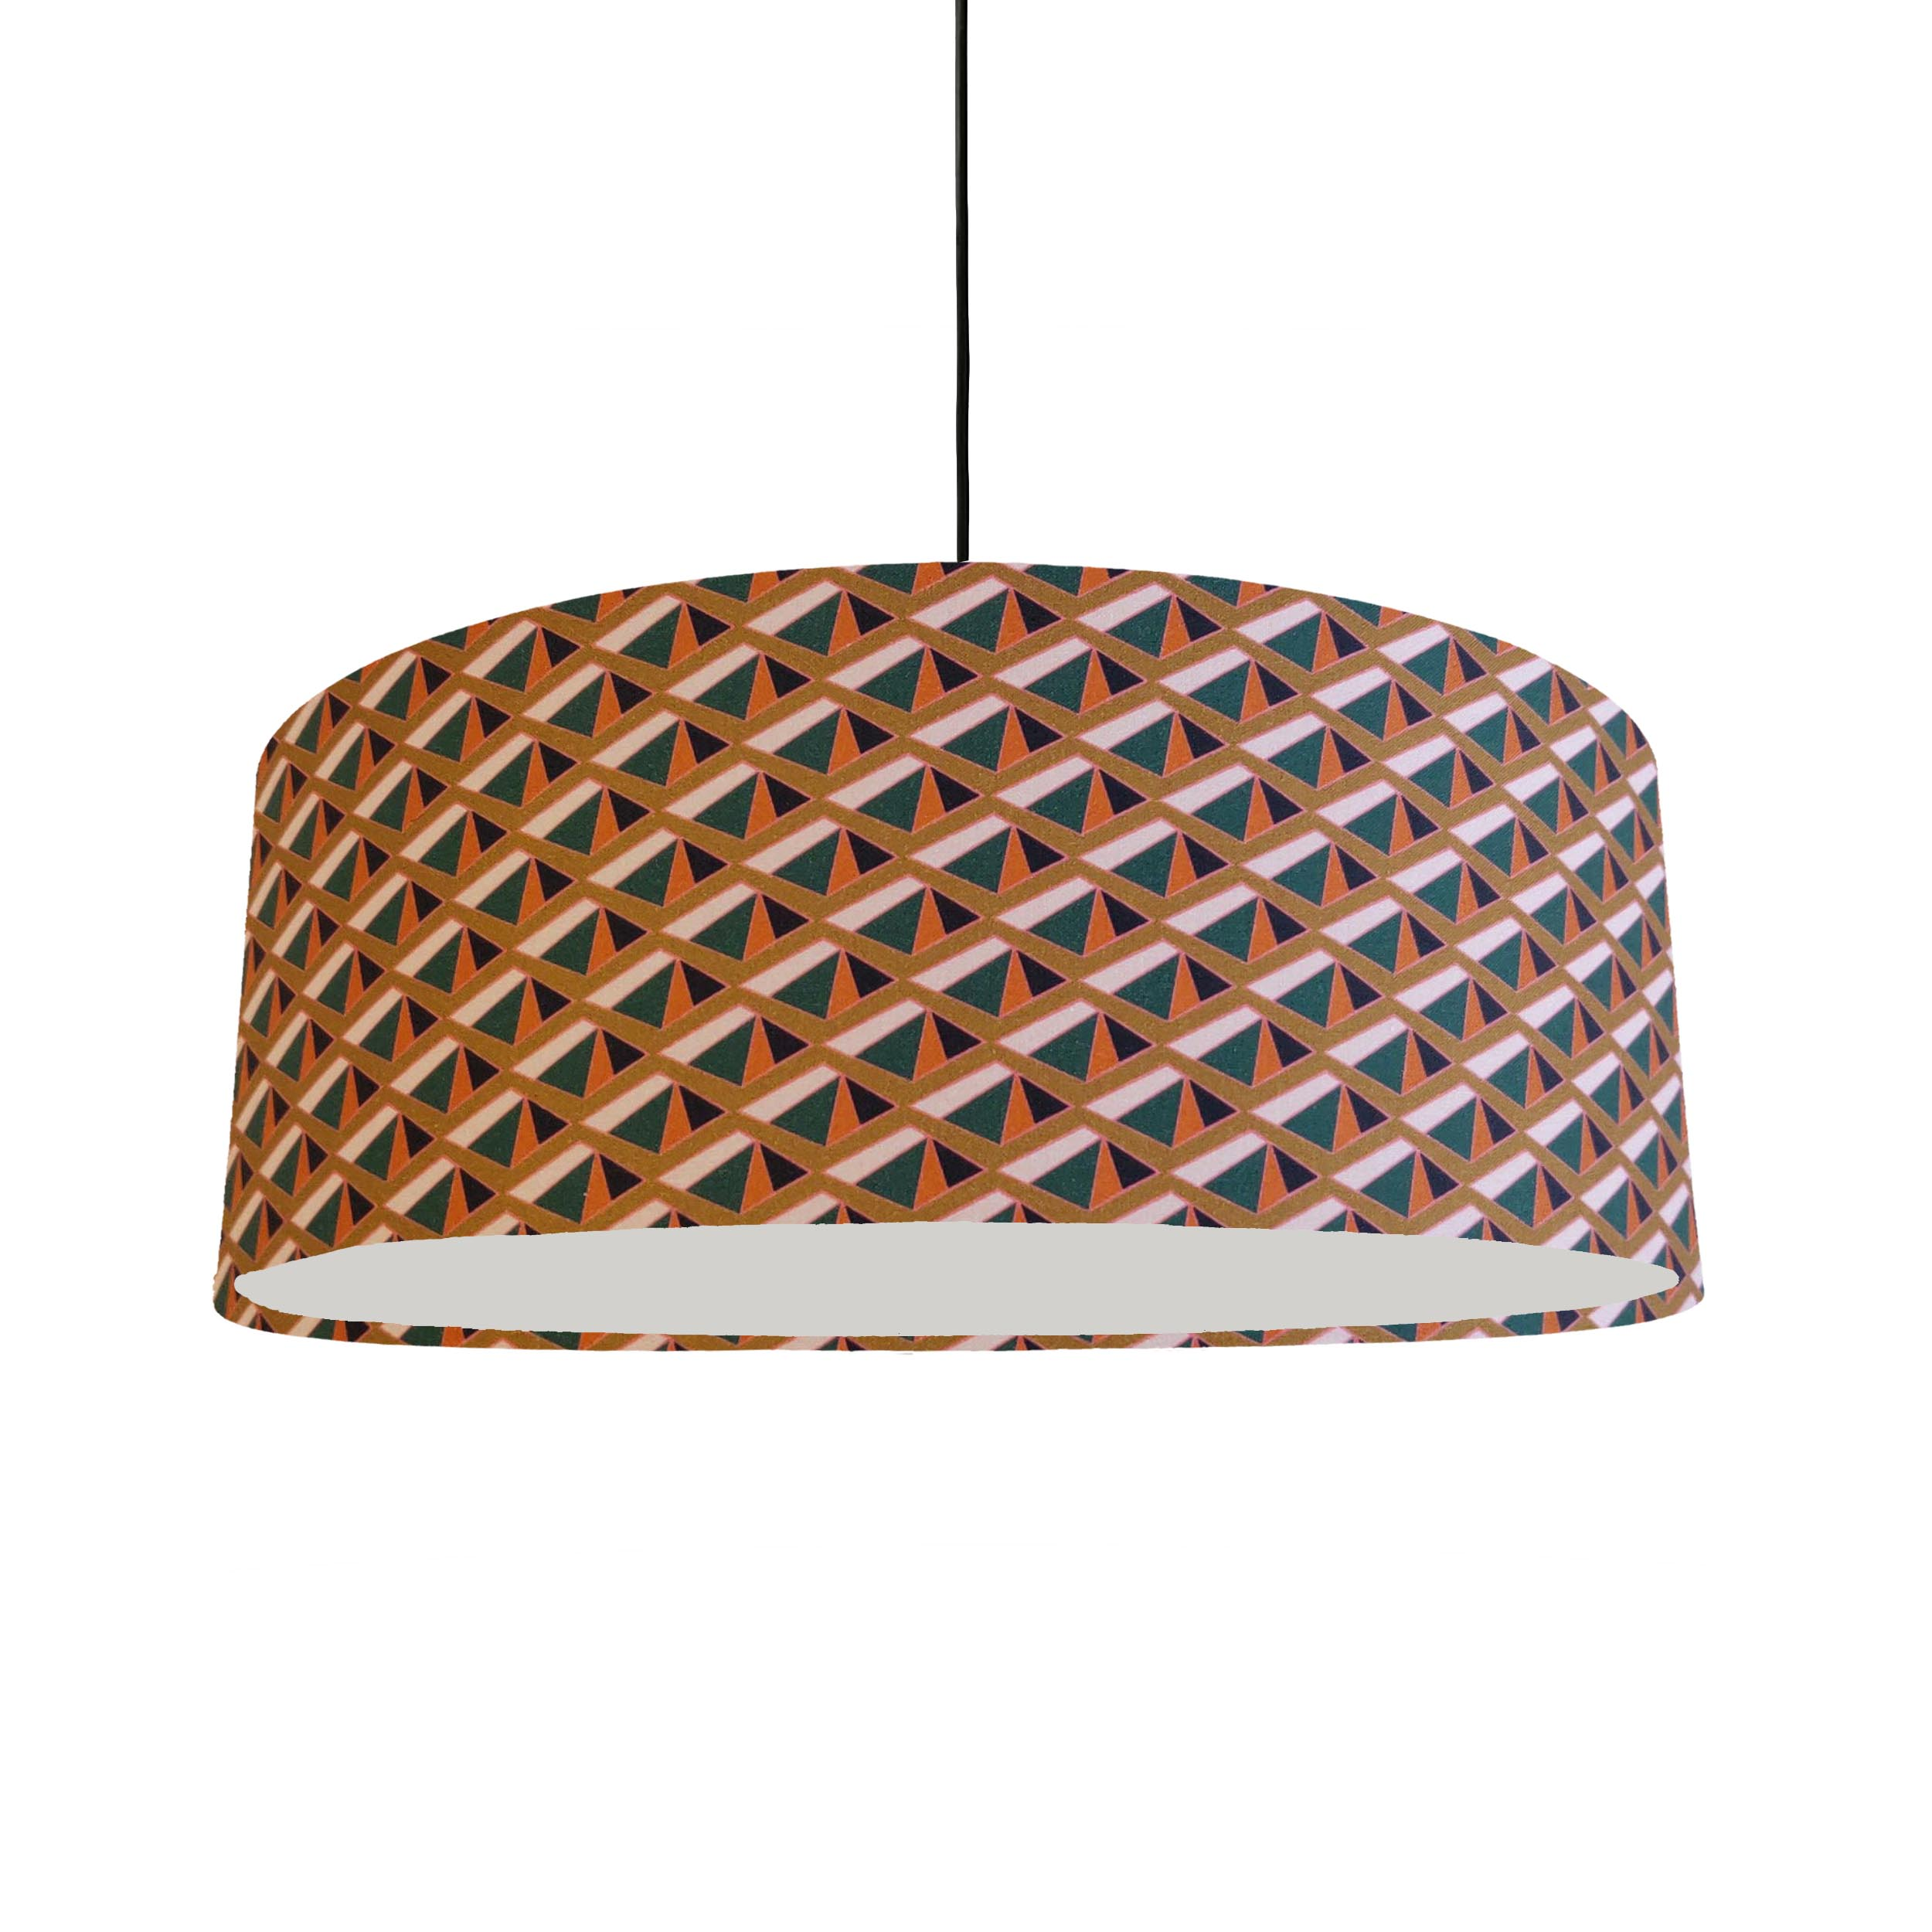 Extra Large Ceiling Lightshade in an Orange Geometric Cotton Fabric